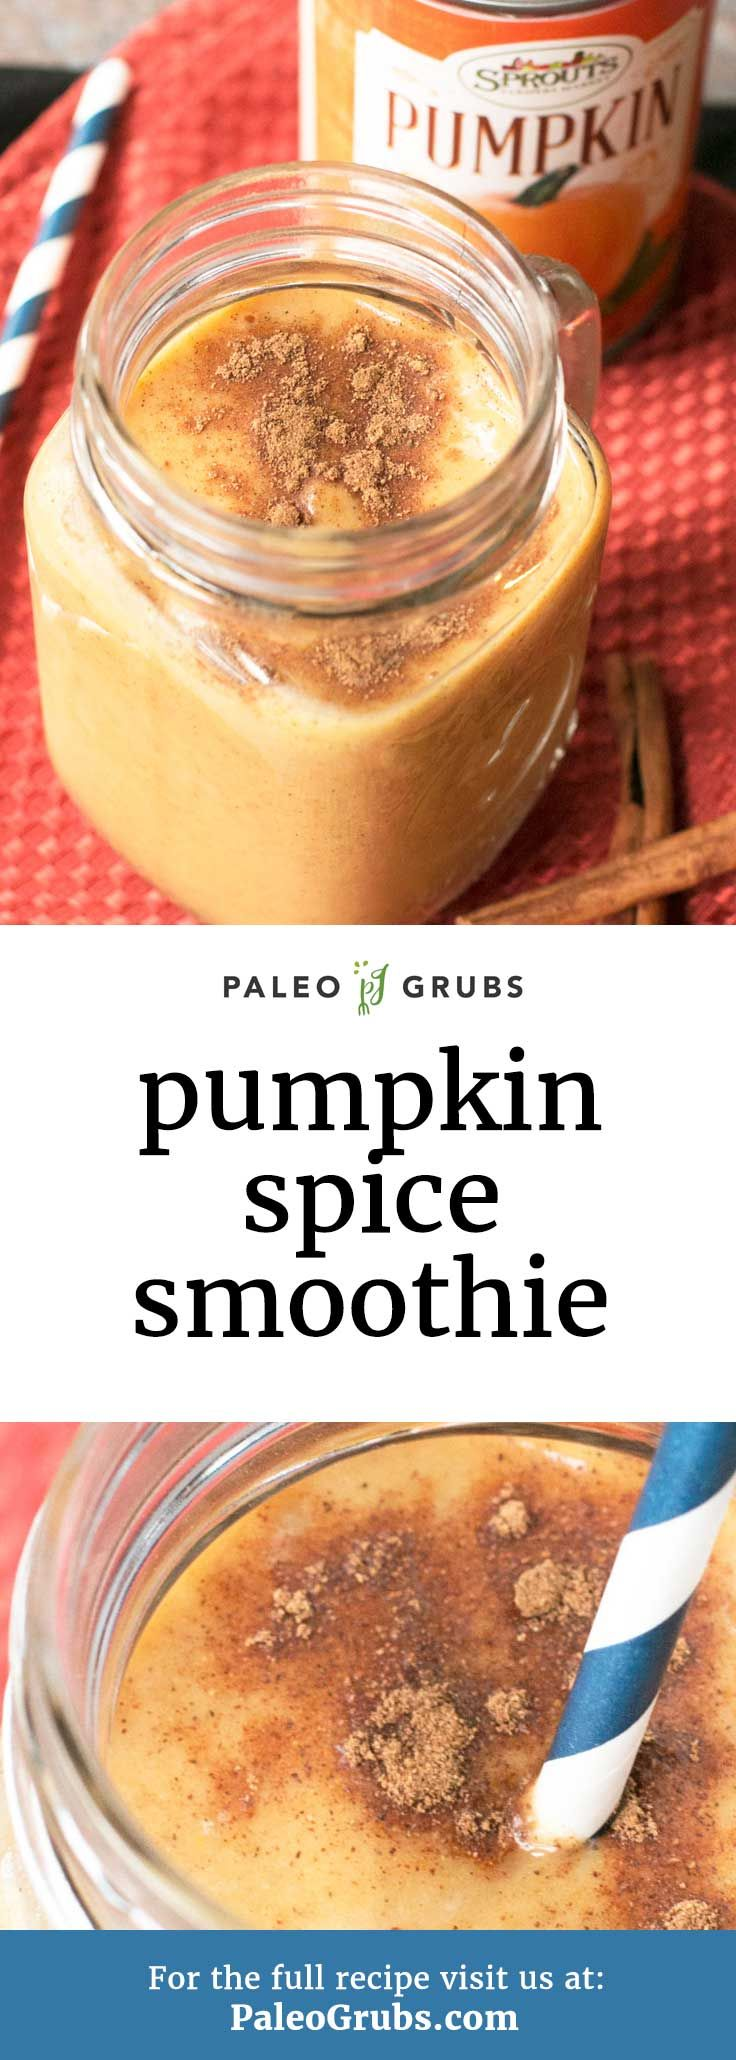 This simple and healthy paleo smoothie is my go-to when I need to get my pumpkin spice fix!